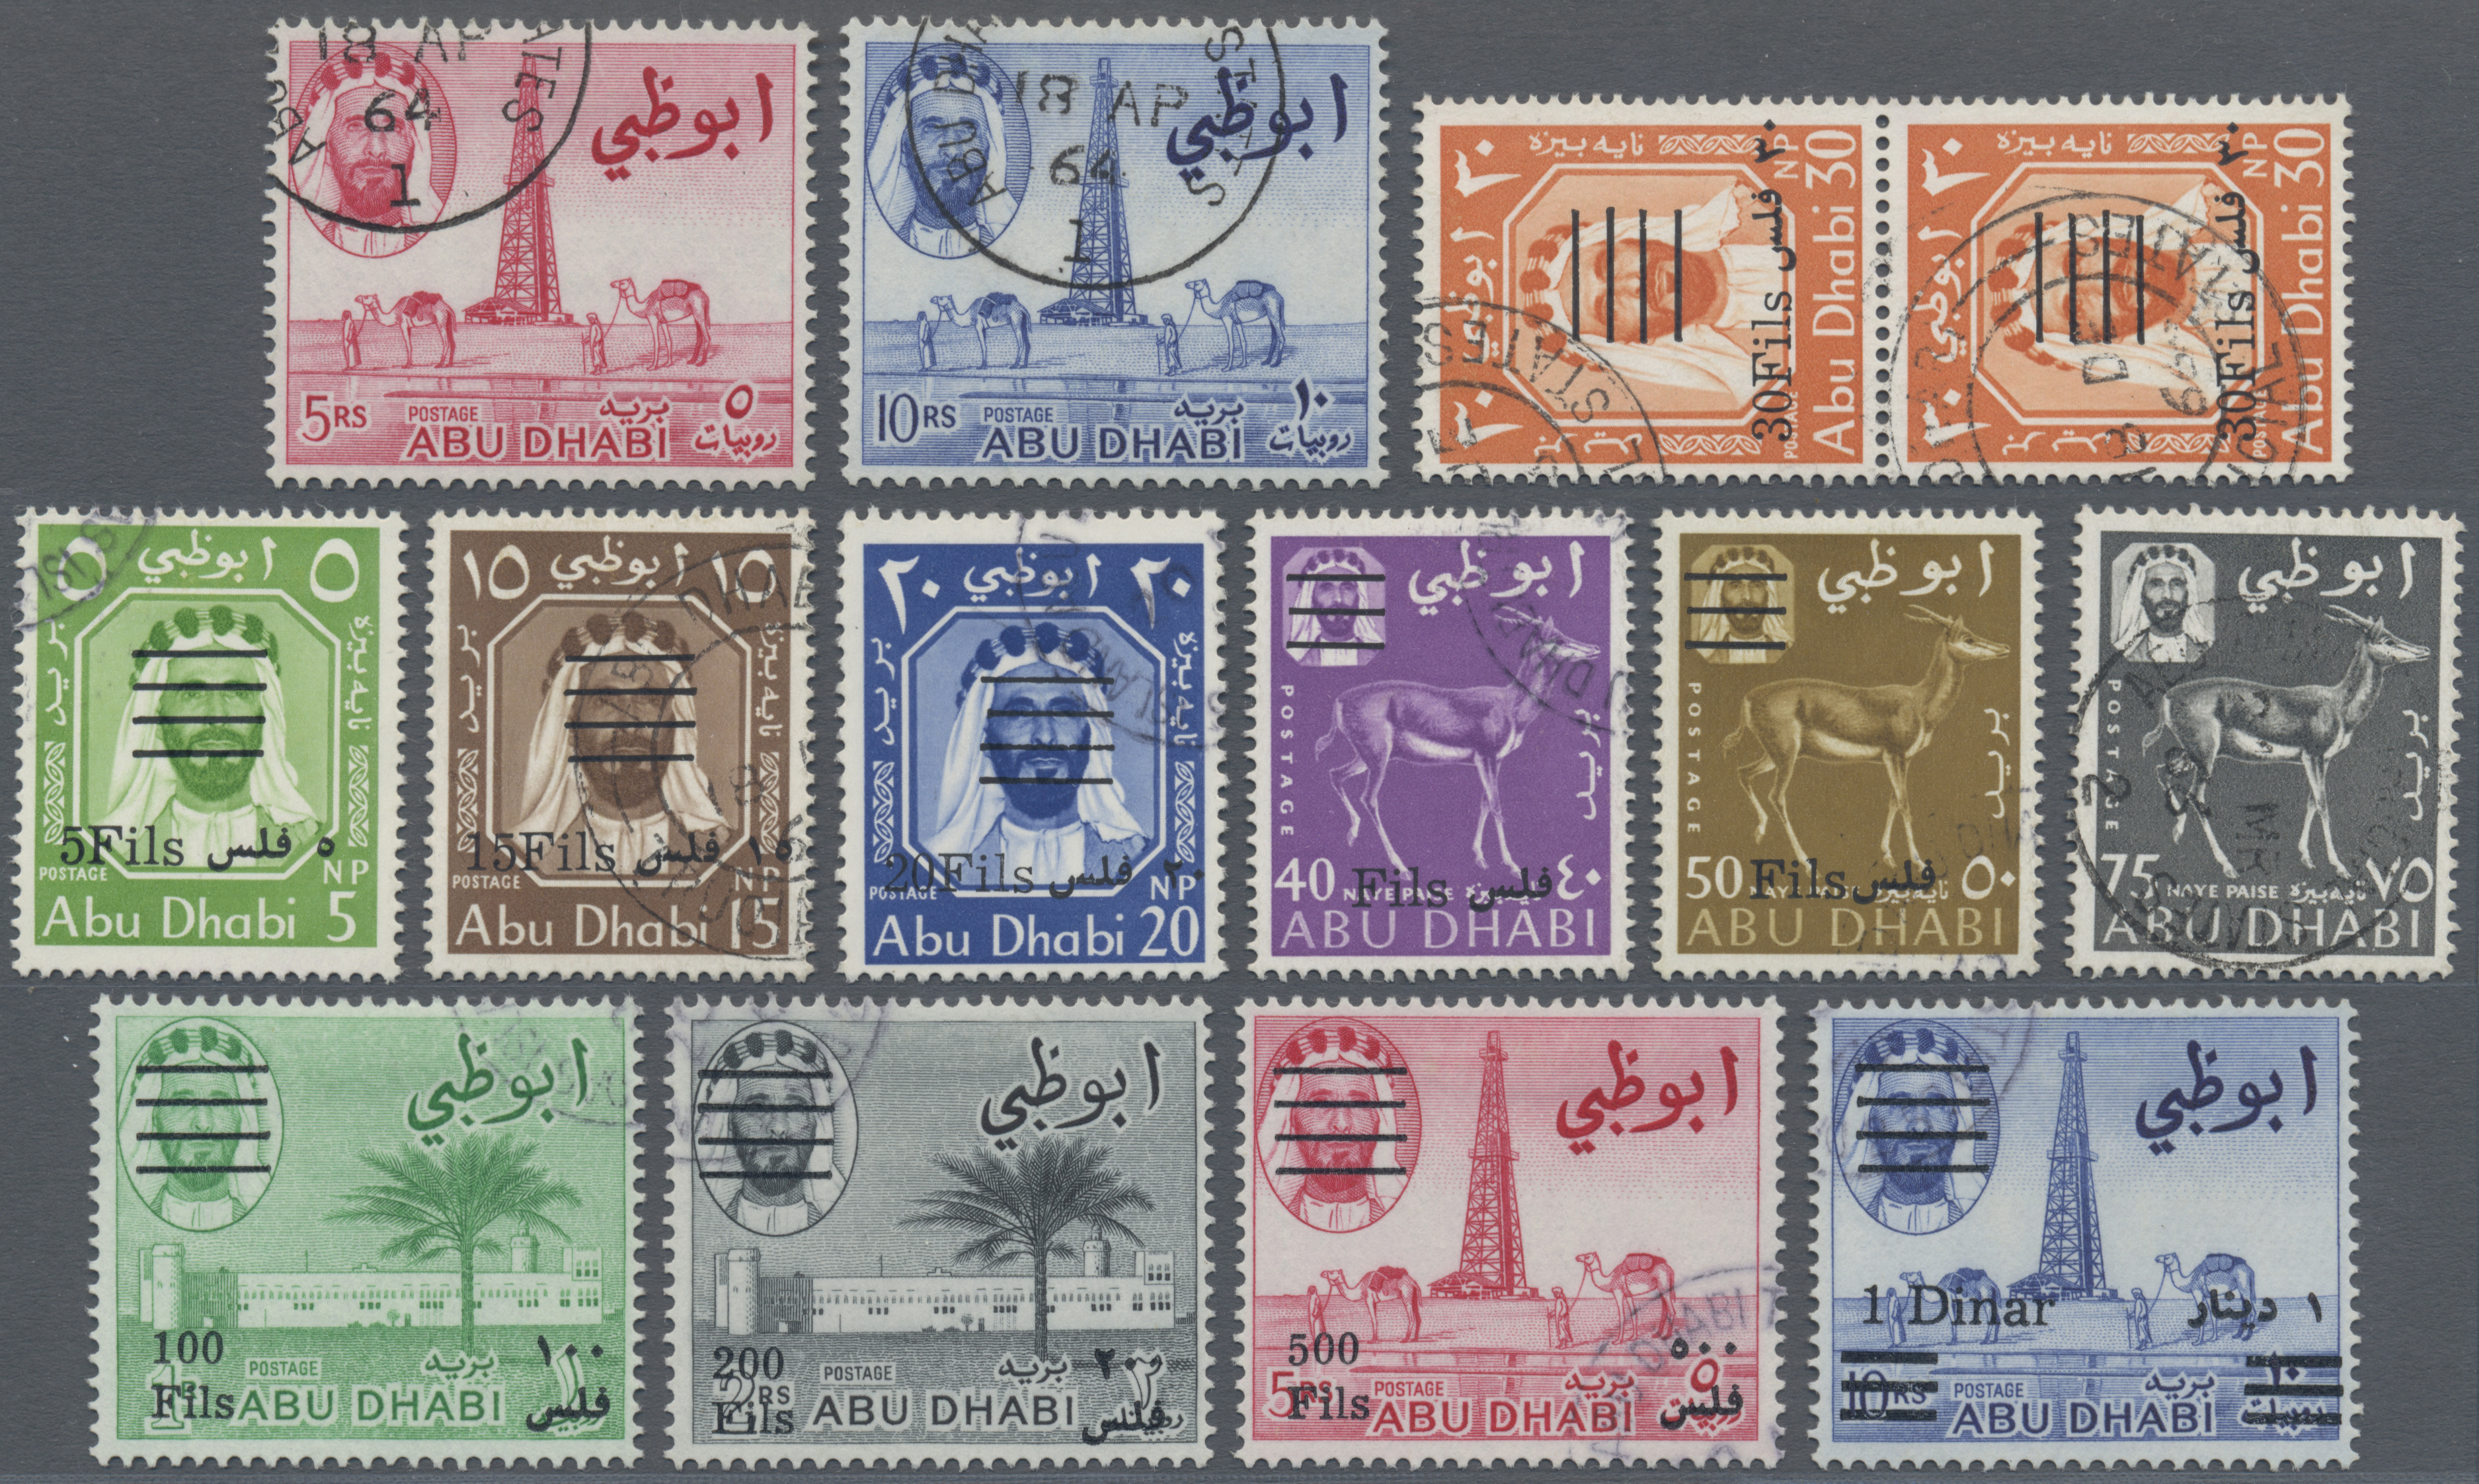 Lot 07100 - Abu Dhabi  -  Auktionshaus Christoph Gärtner GmbH & Co. KG Sale #43 Asia, Overseas, Air & Ships, Mail, Spain, Day 4